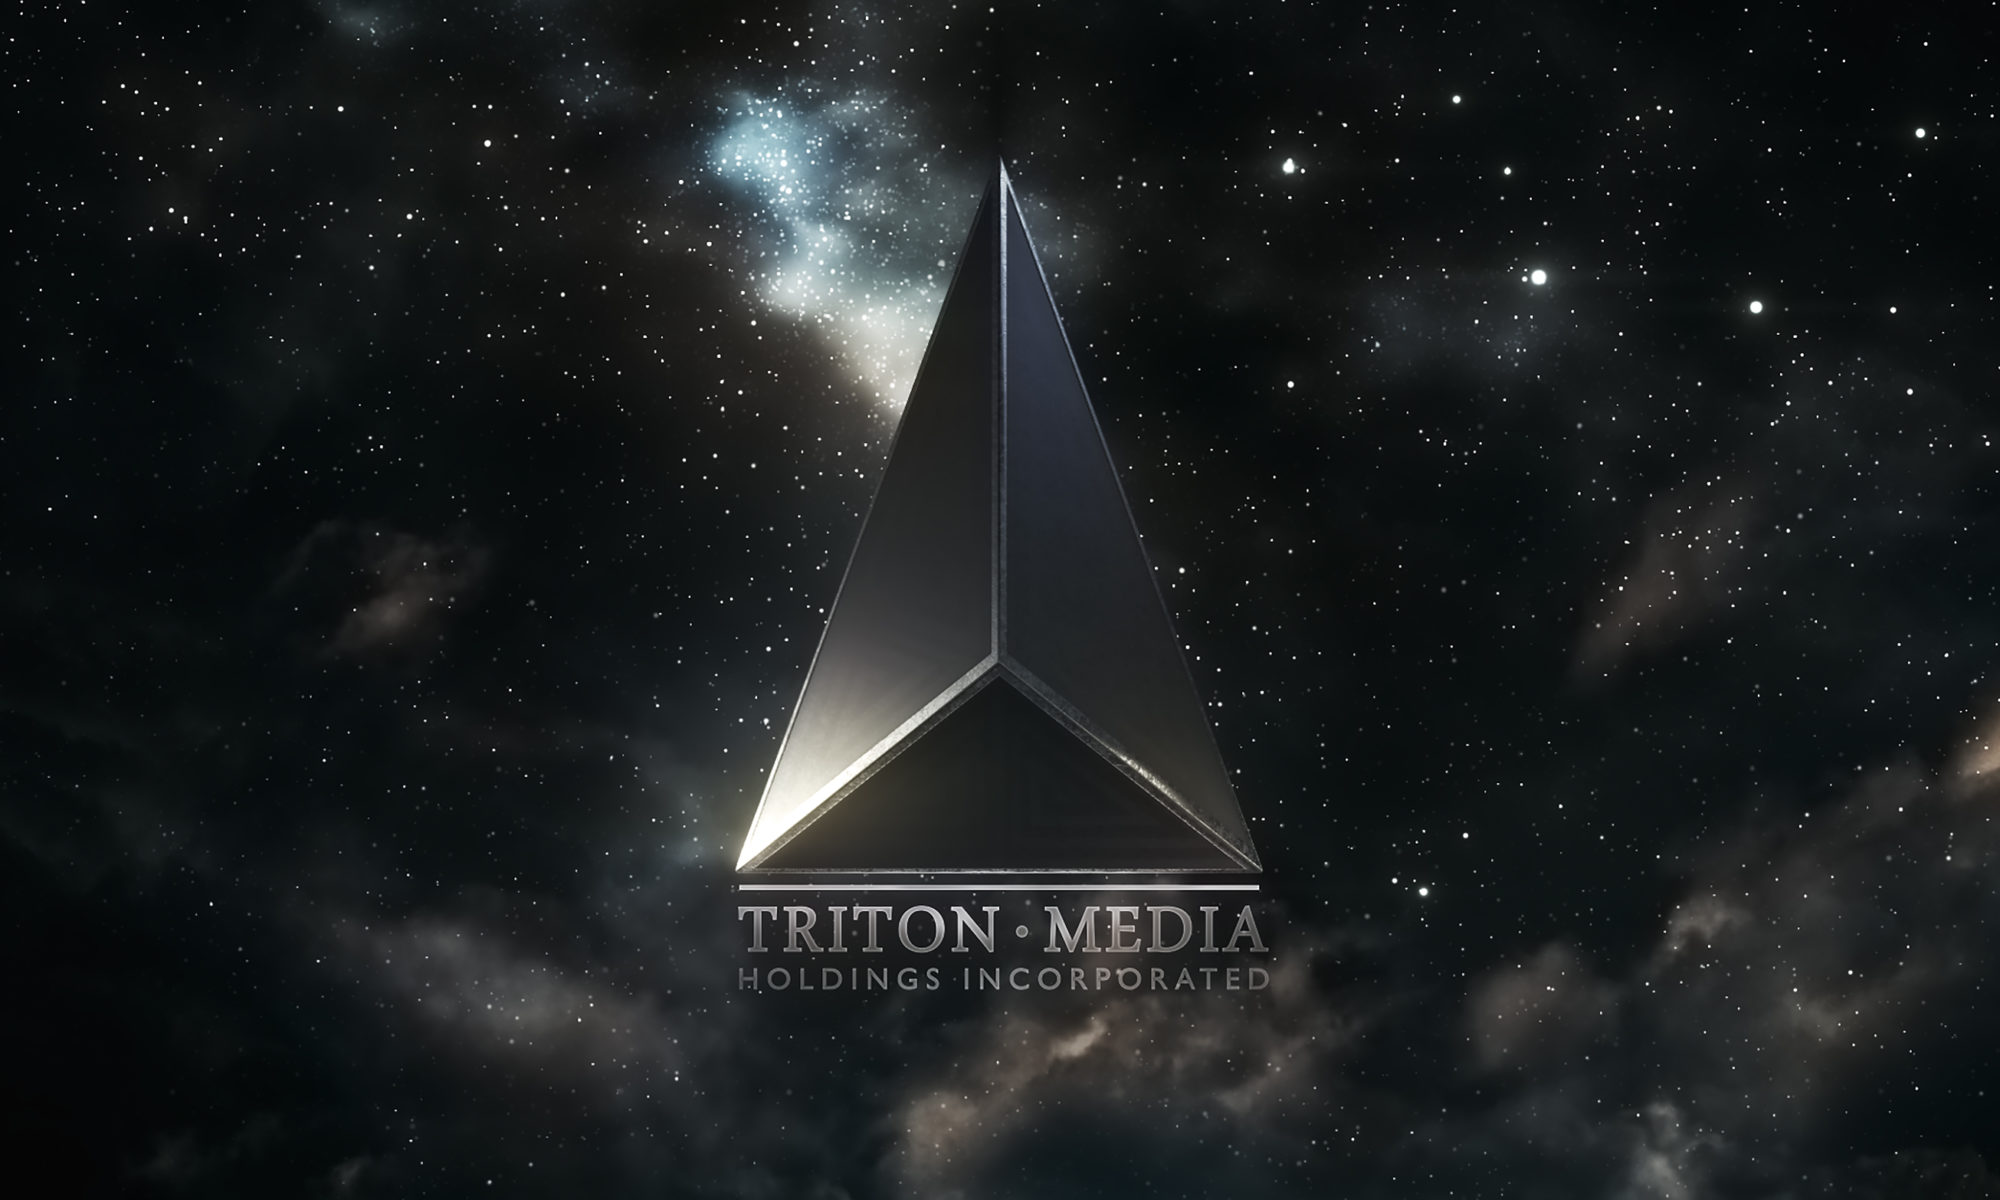 Triton Media Holdings Incorporated